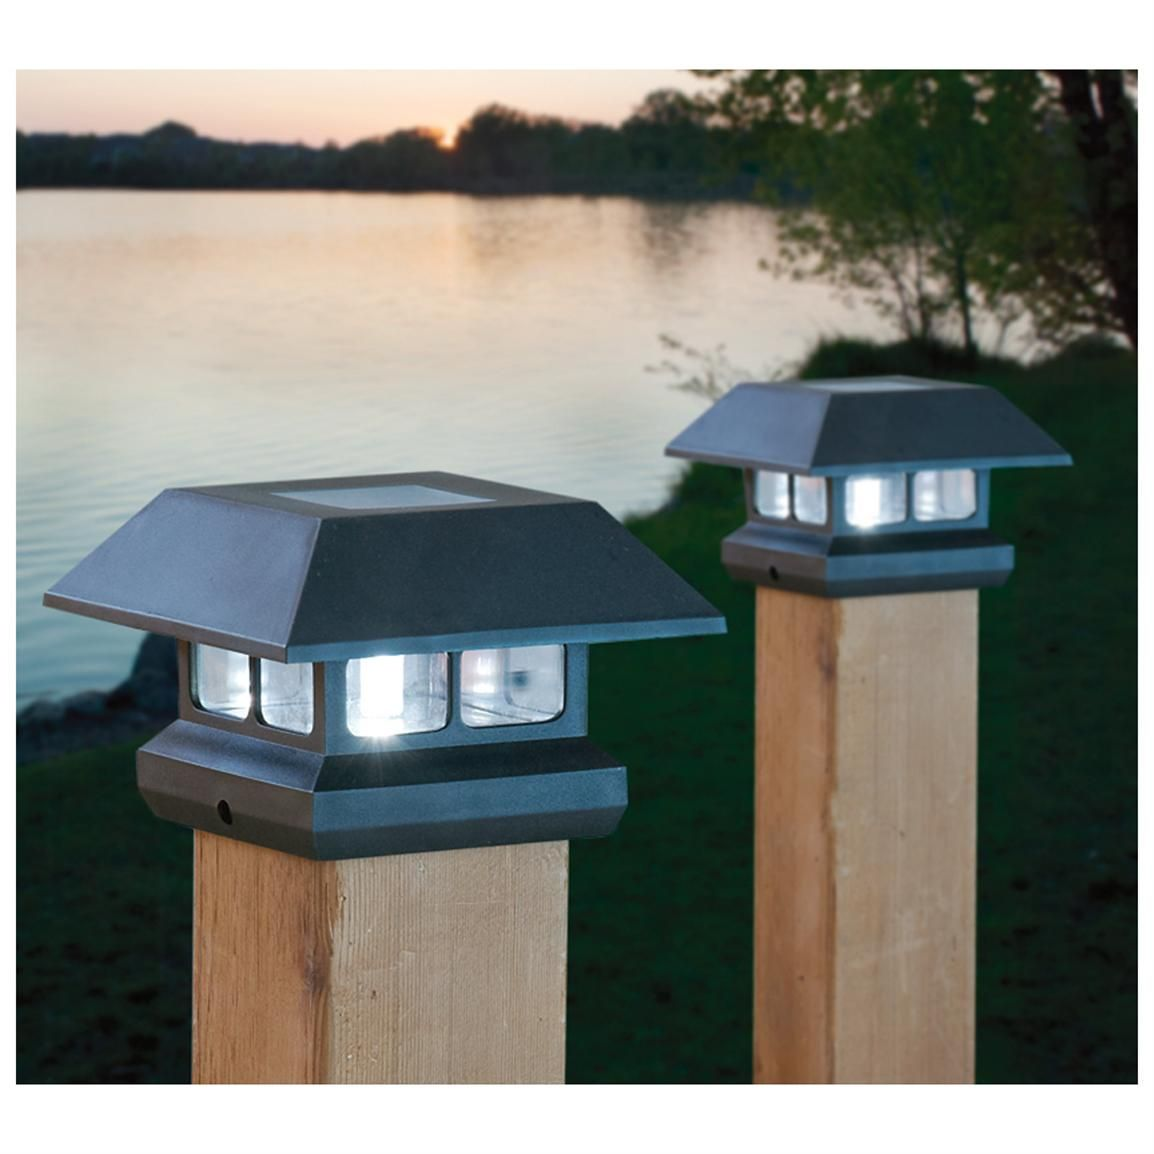 Castlecreek solar deck post cap lights 2 pack solar post lights find here details of solar post light manufacturers suppliers dealers traders exporters from india buy solar post light through verified companies aloadofball Images